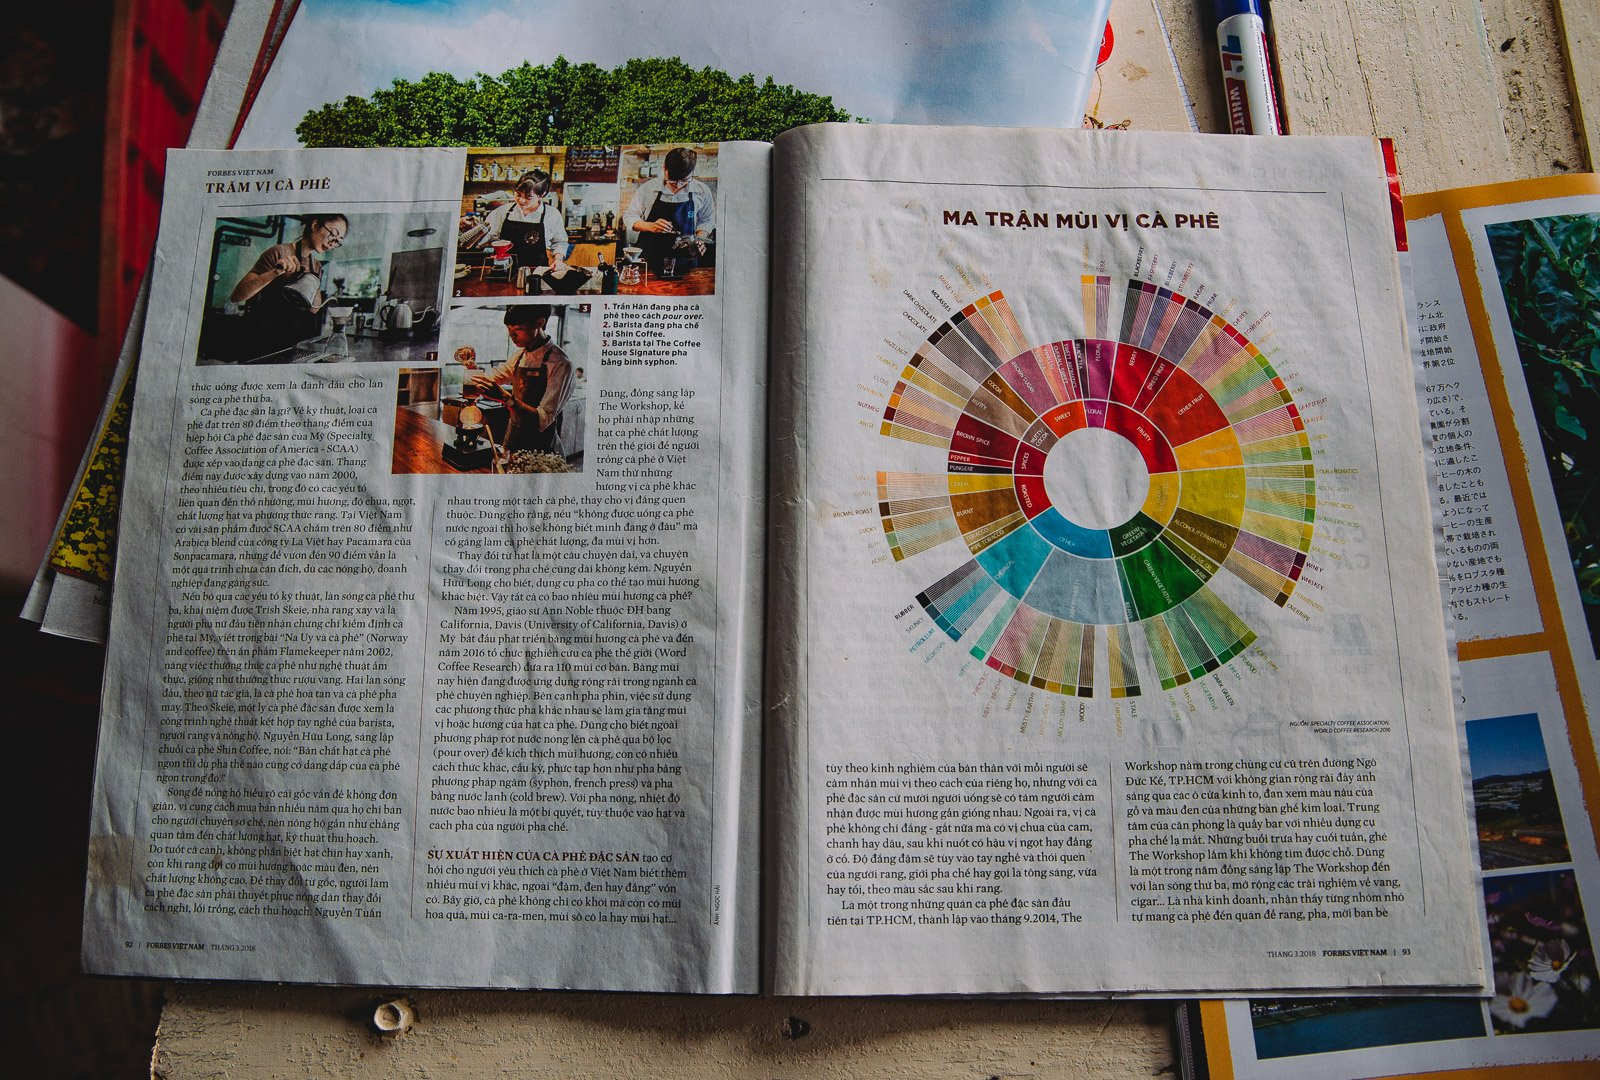 An open magazine displays the coffee tasting wheel